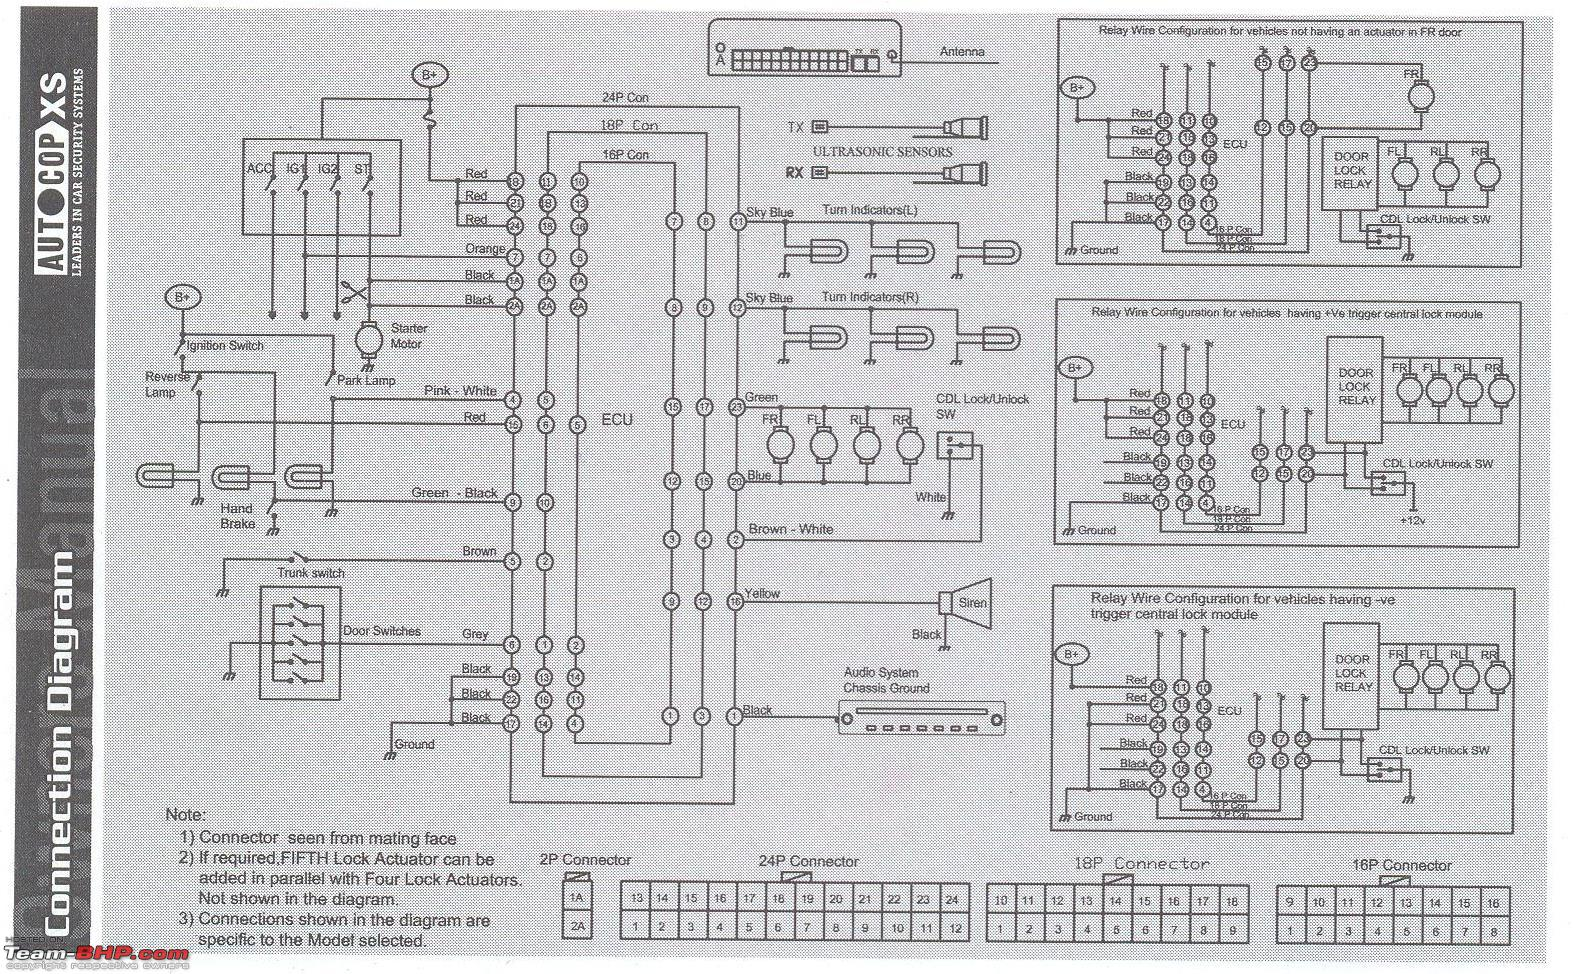 [WRG-5951] Suzuki Alto Electrical Wiring Diagram